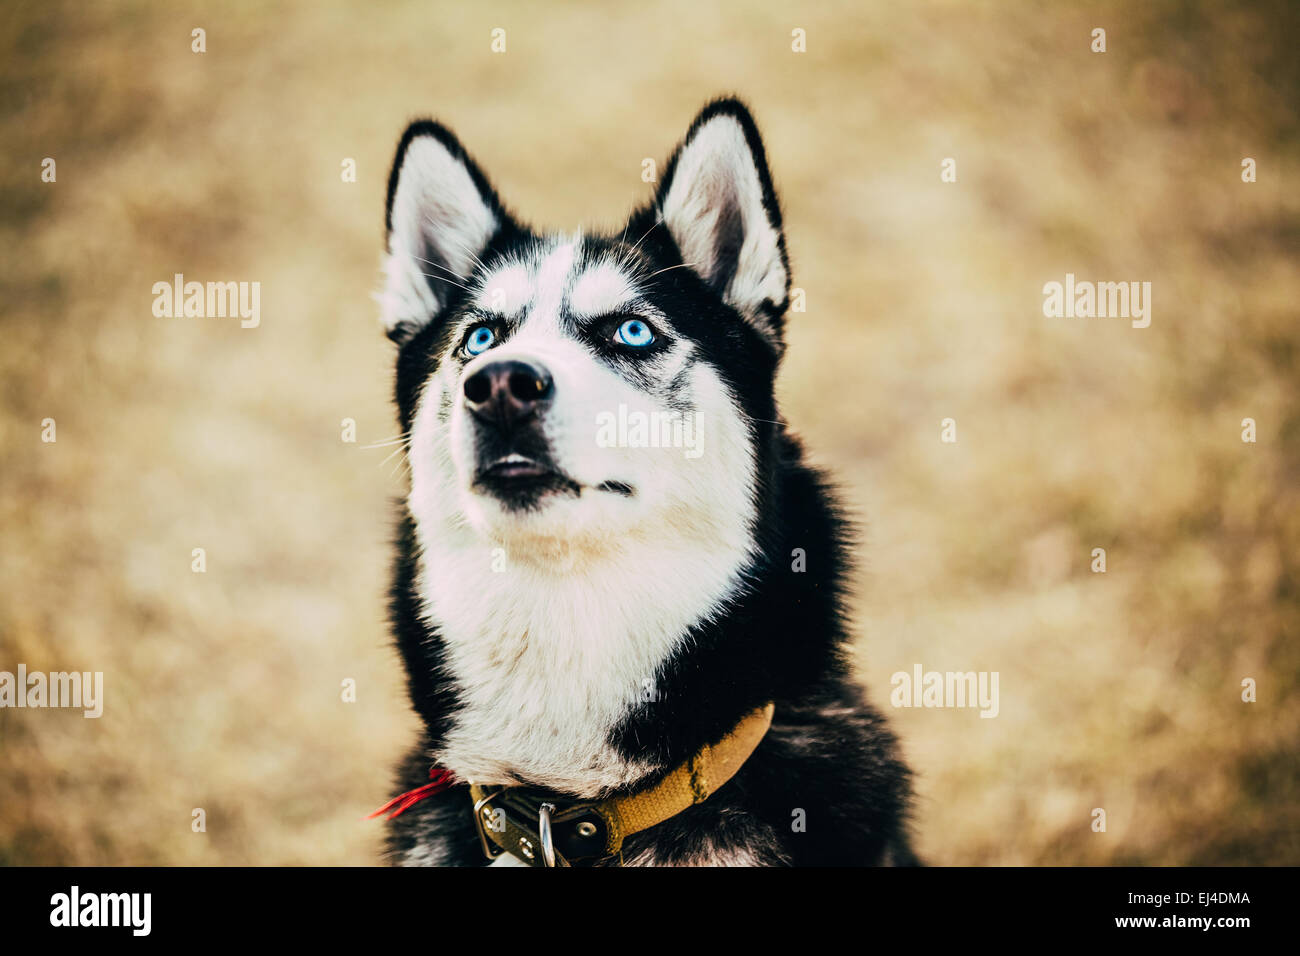 Close Up Young Happy Husky Puppy Eskimo Dog Looking Up Outdoor In Autumn - Stock Image